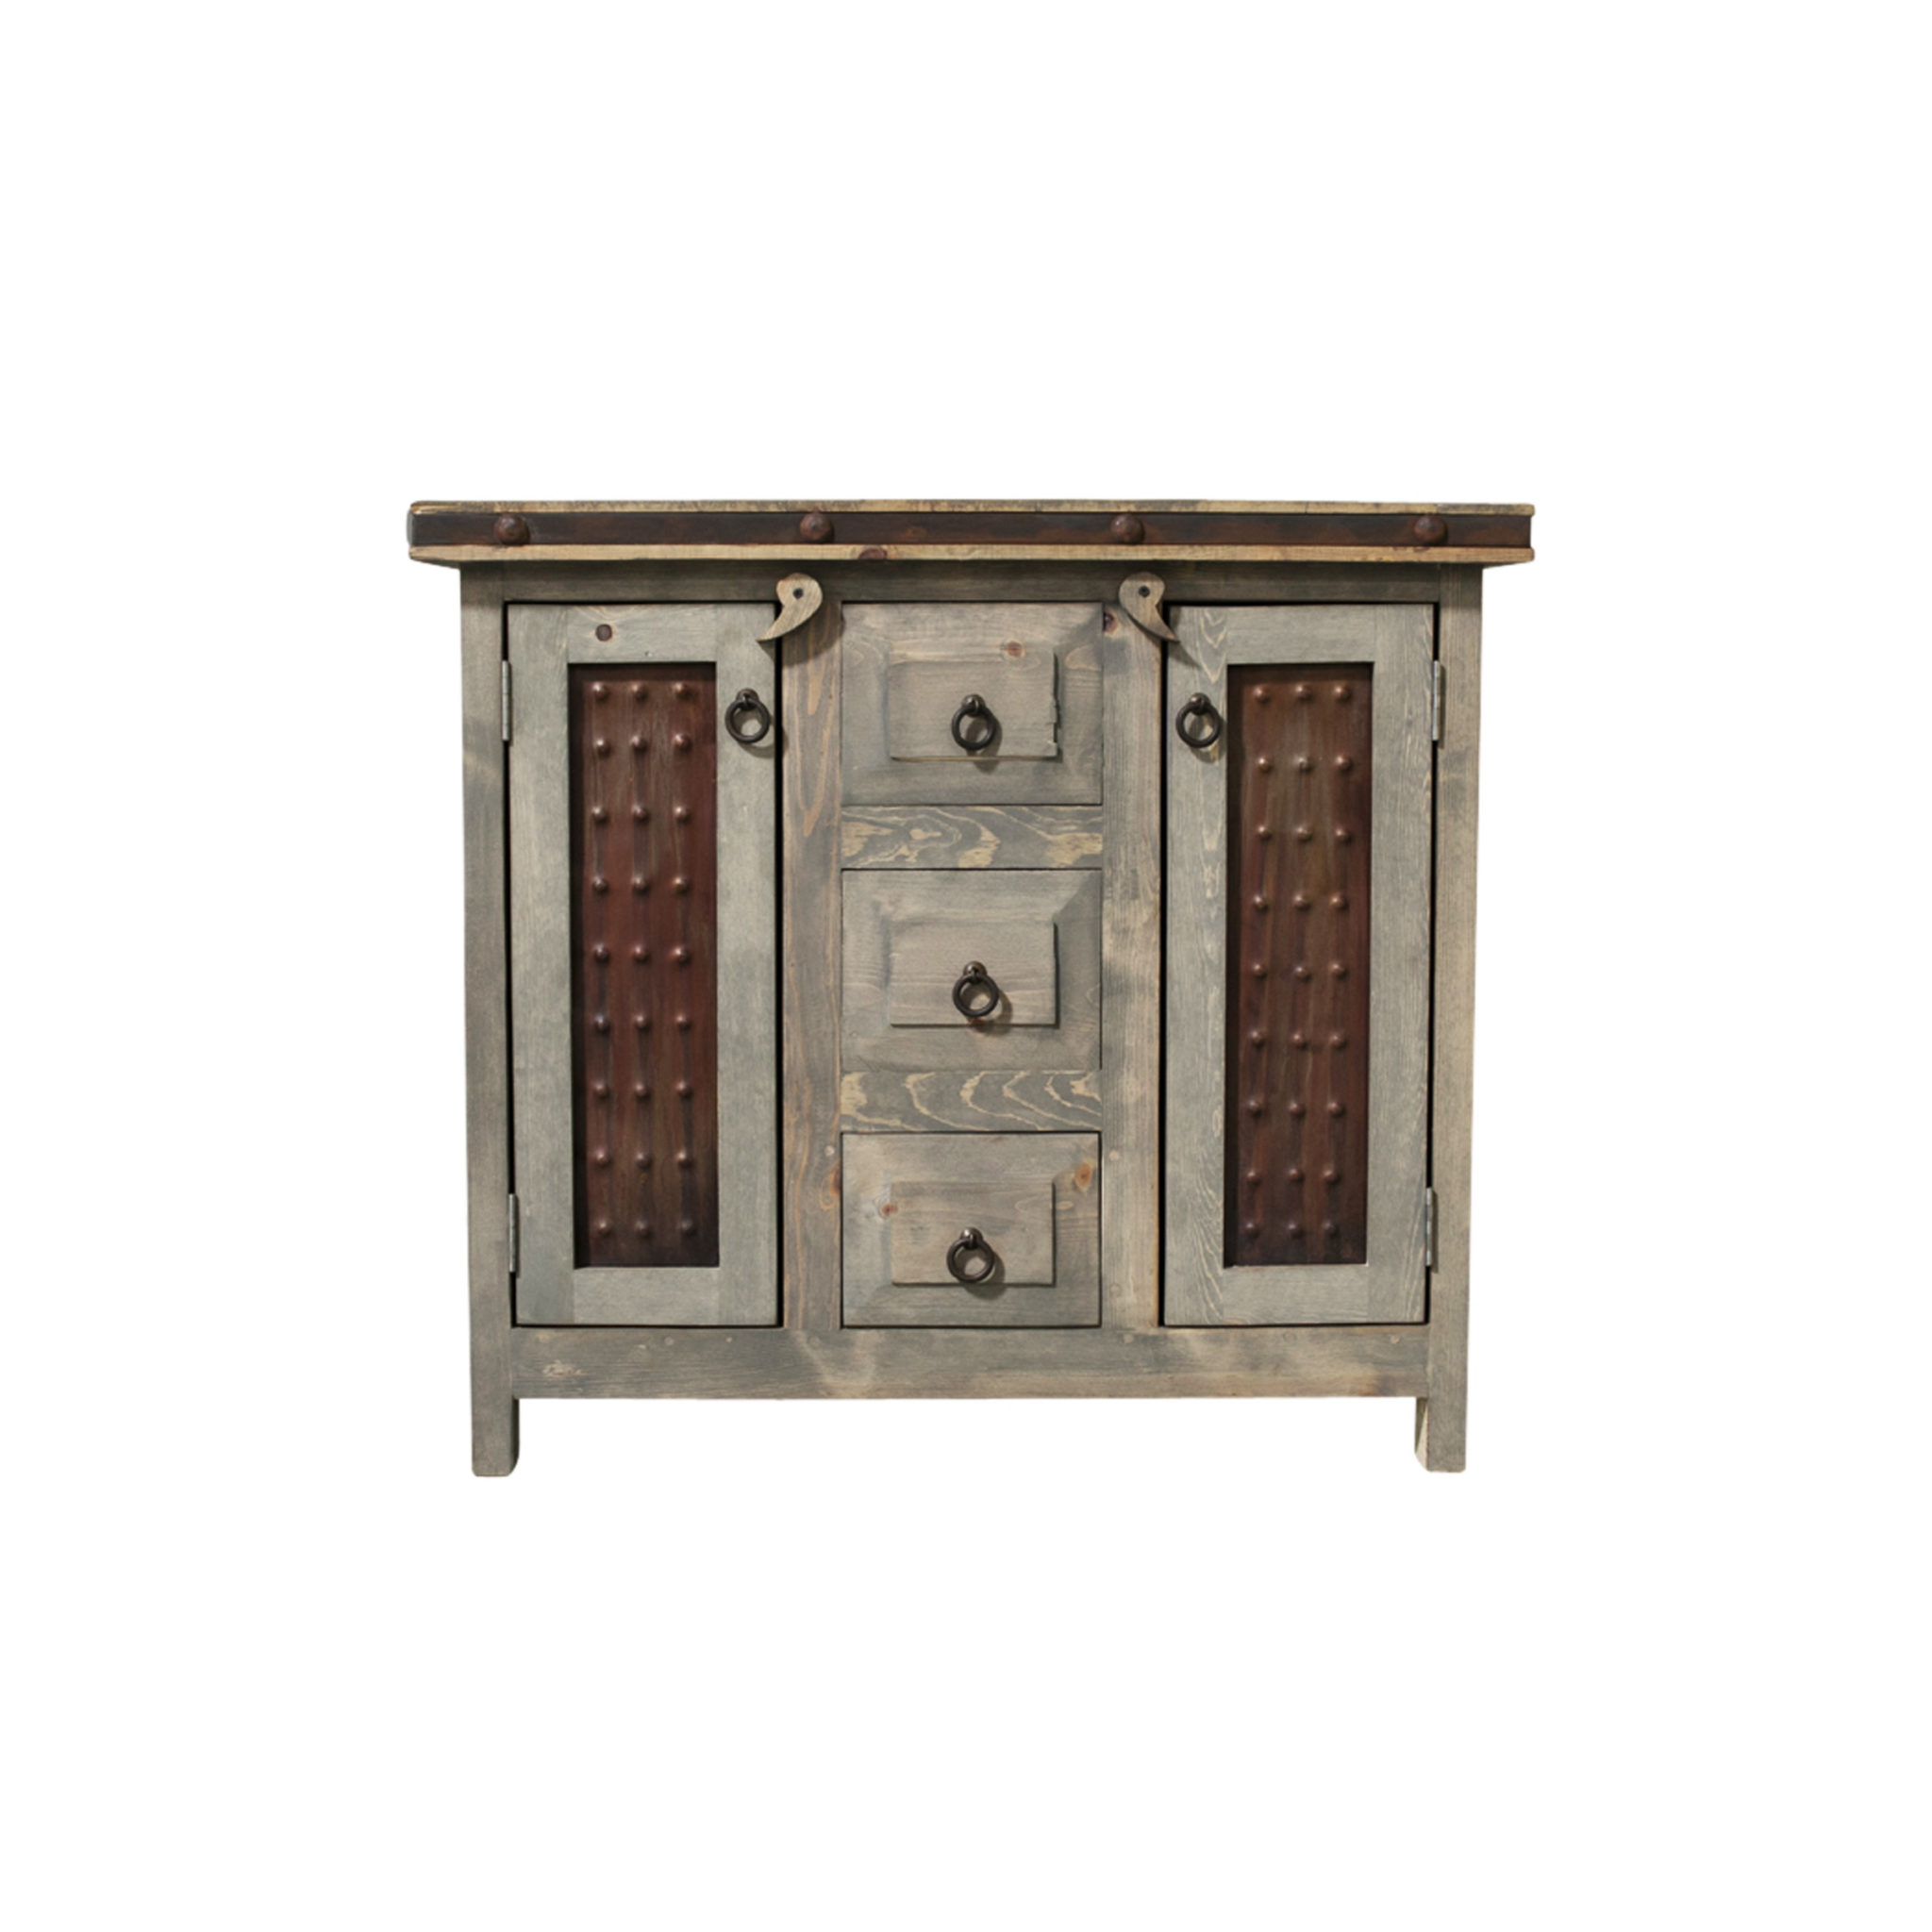 style of doors vanities wood double on custom gorgeous furniture sink vanity amusing base santa weathered fe rustic southwest demejico spanish bathroom